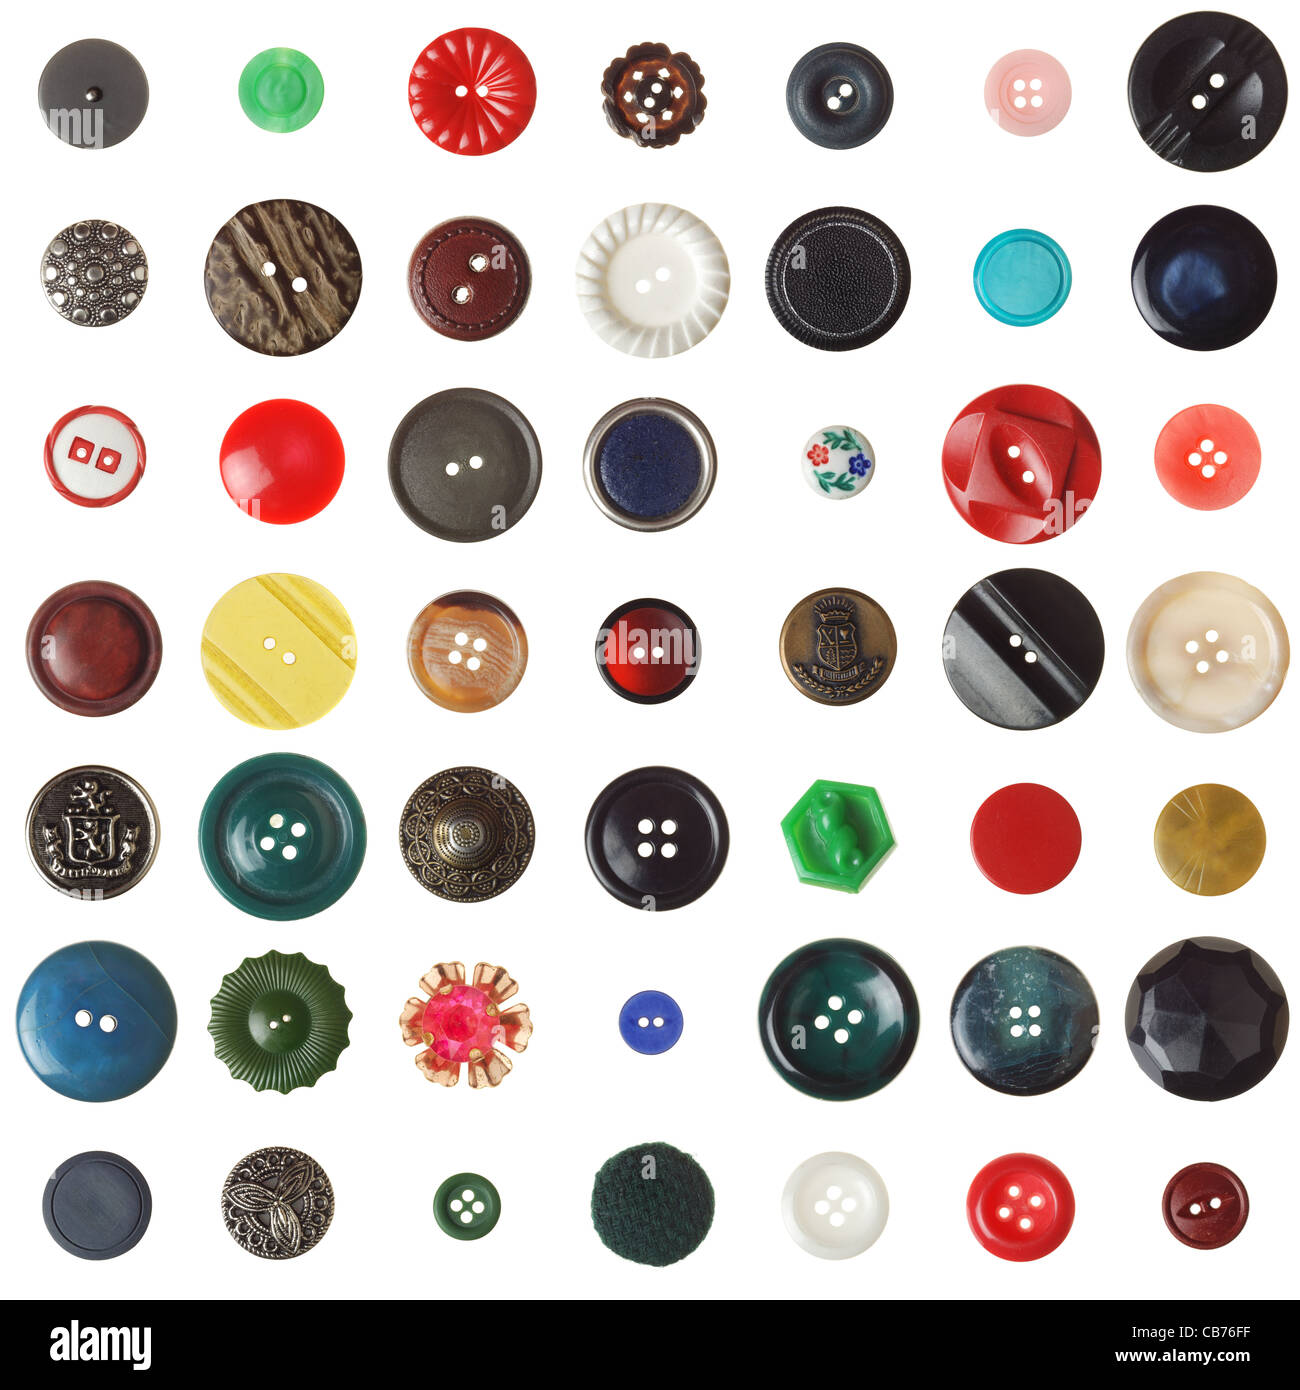 vintage/retro buttons on white. (2 of 2) - Stock Image